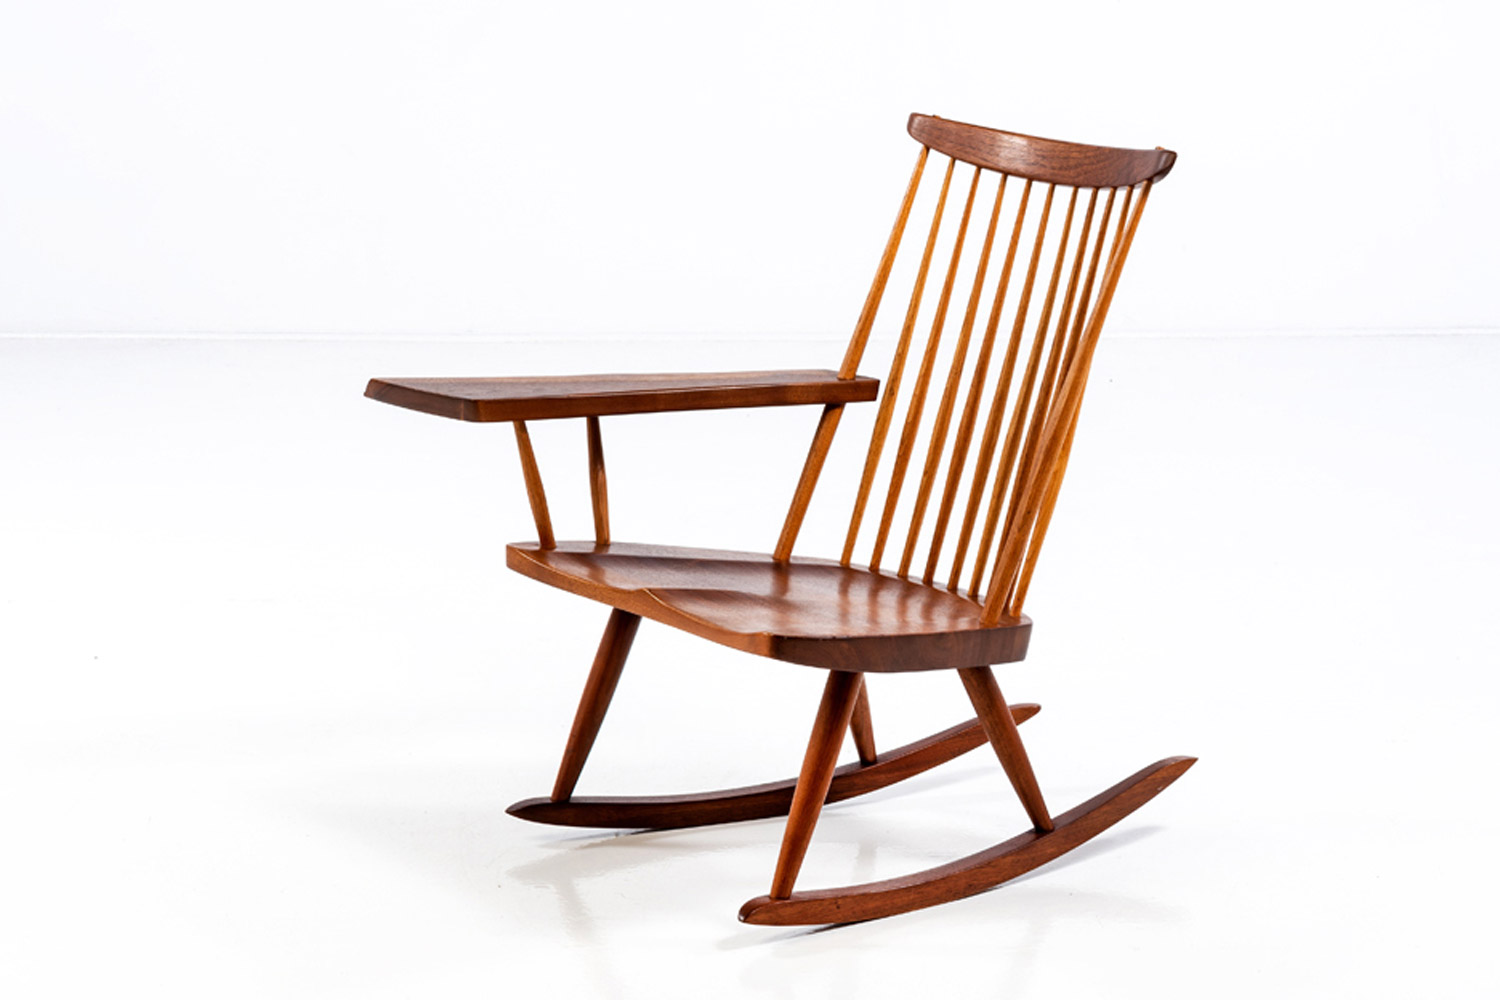 George Nakashima (1905-1990) Rocking chair with single freeform arm © Piasa